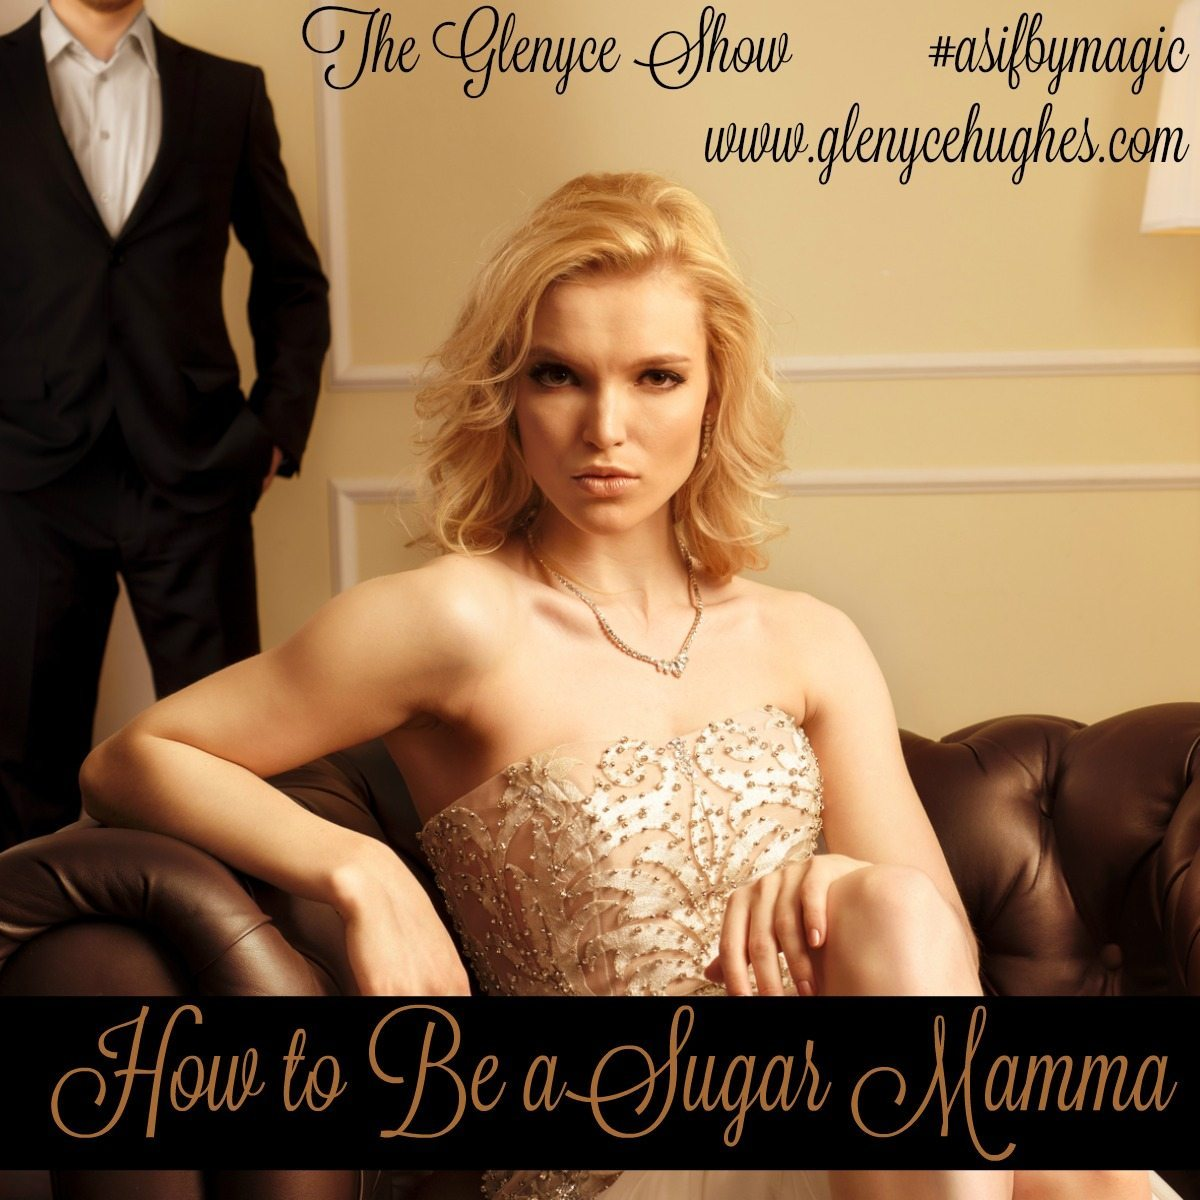 How to Be a Sugar Mamma